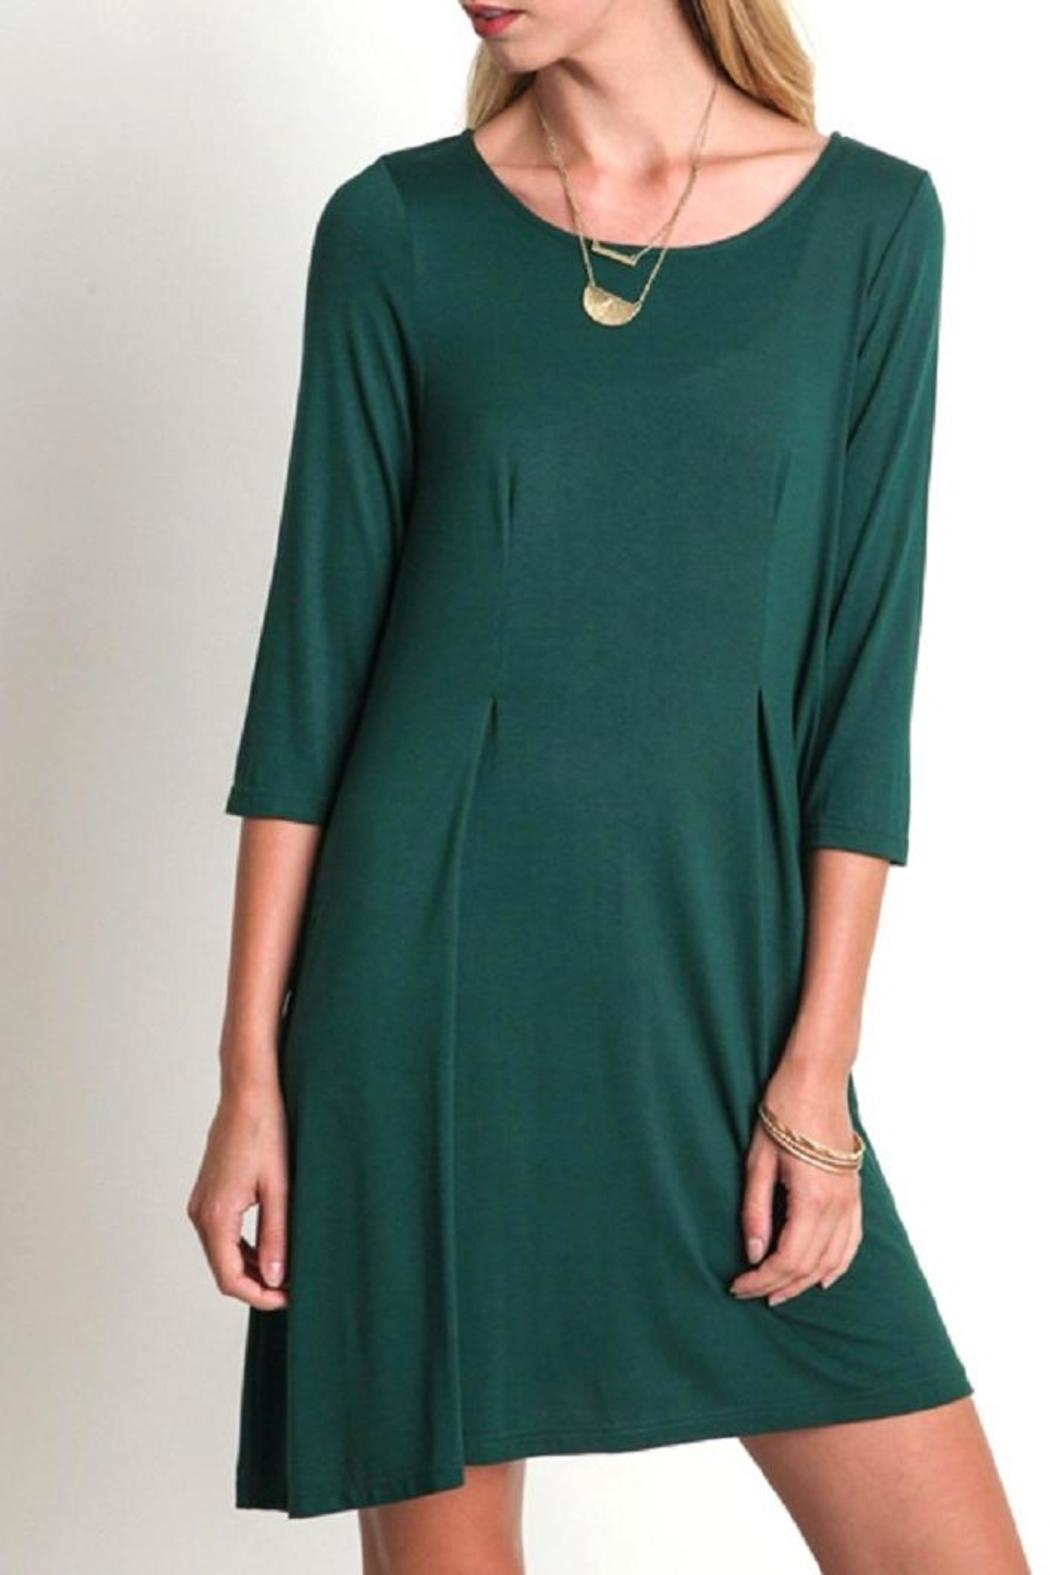 Umgee Usa Holiday Basic Dress From Mississippi By Exit 16